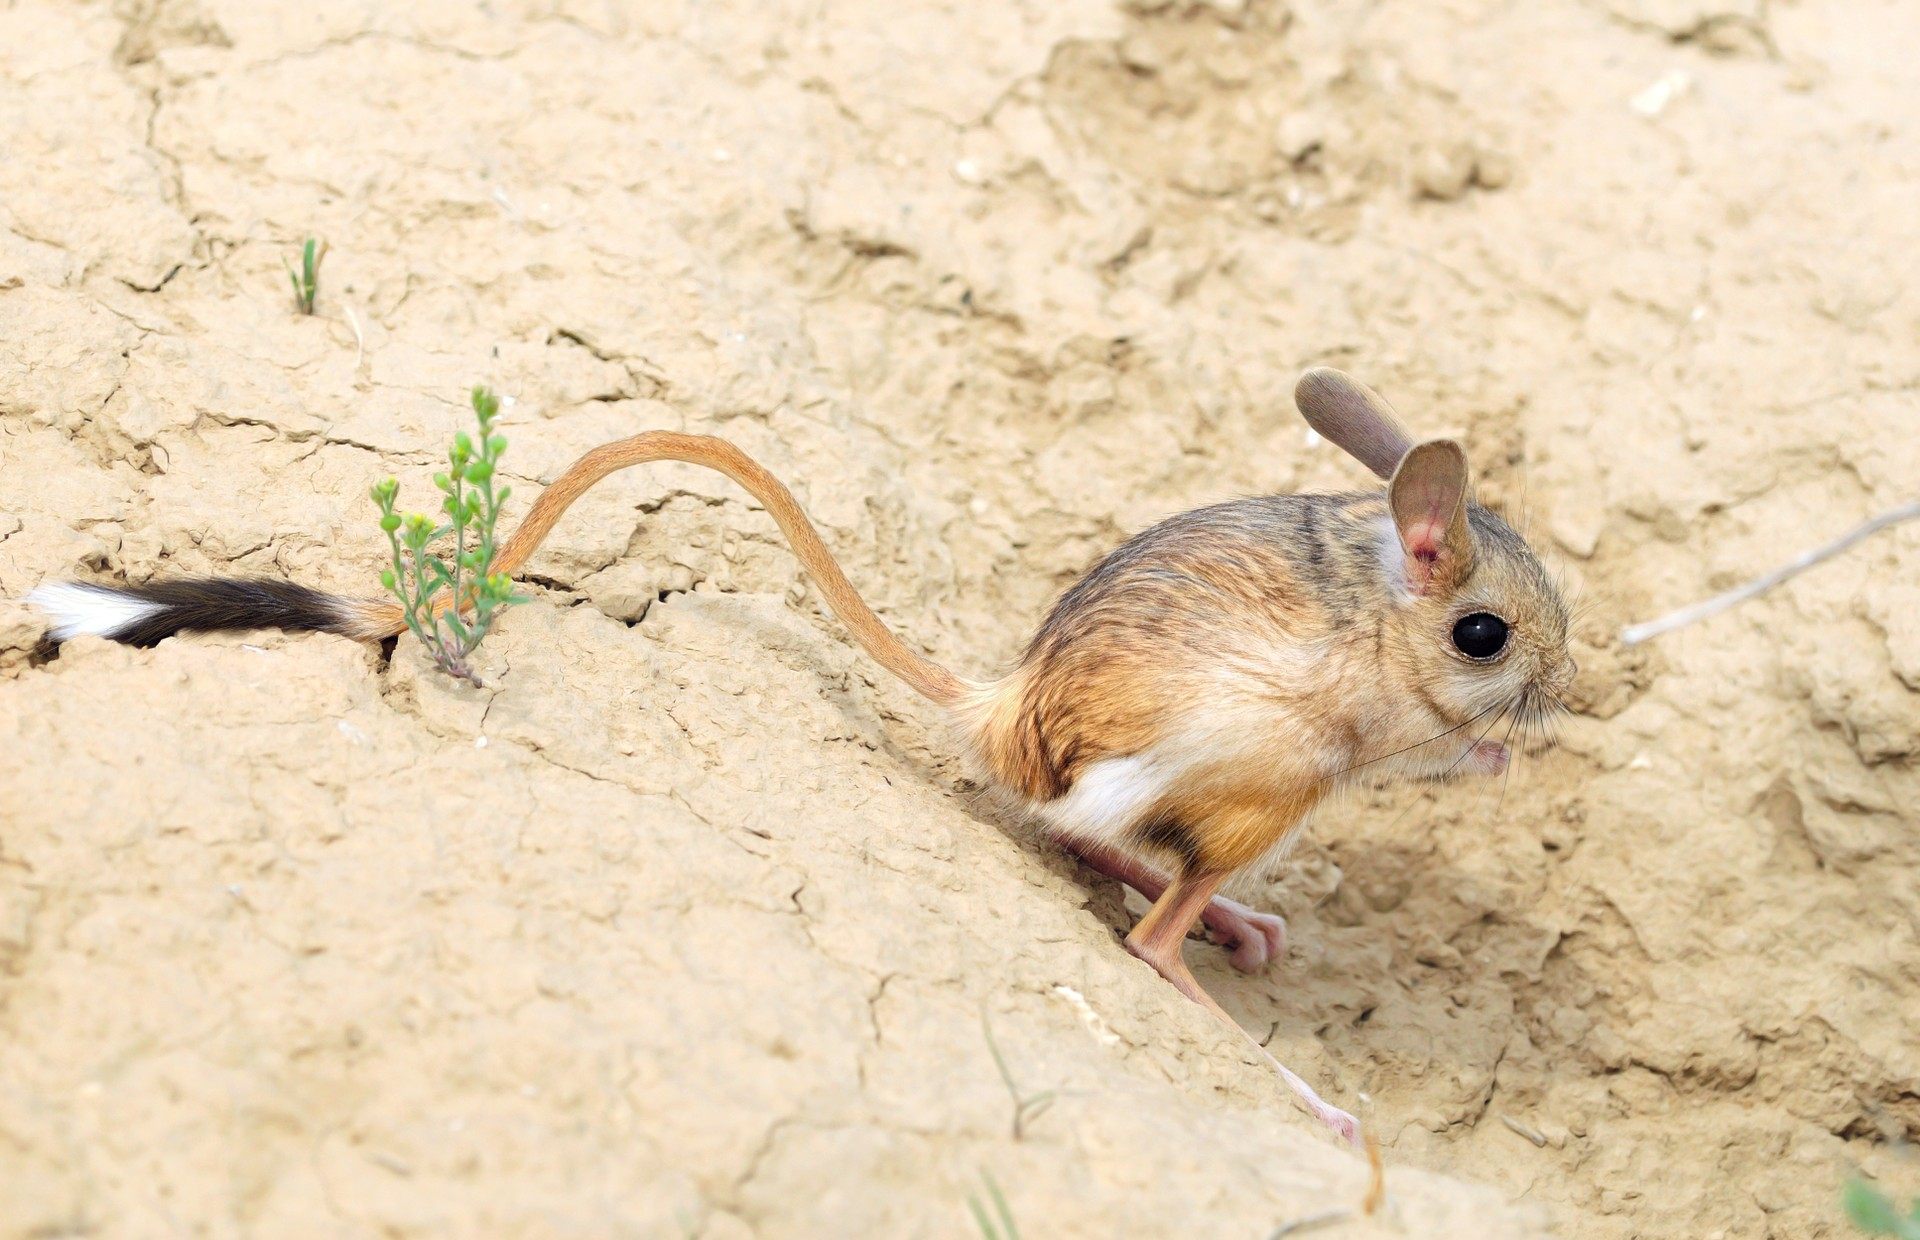 Jerboa in Central Asia